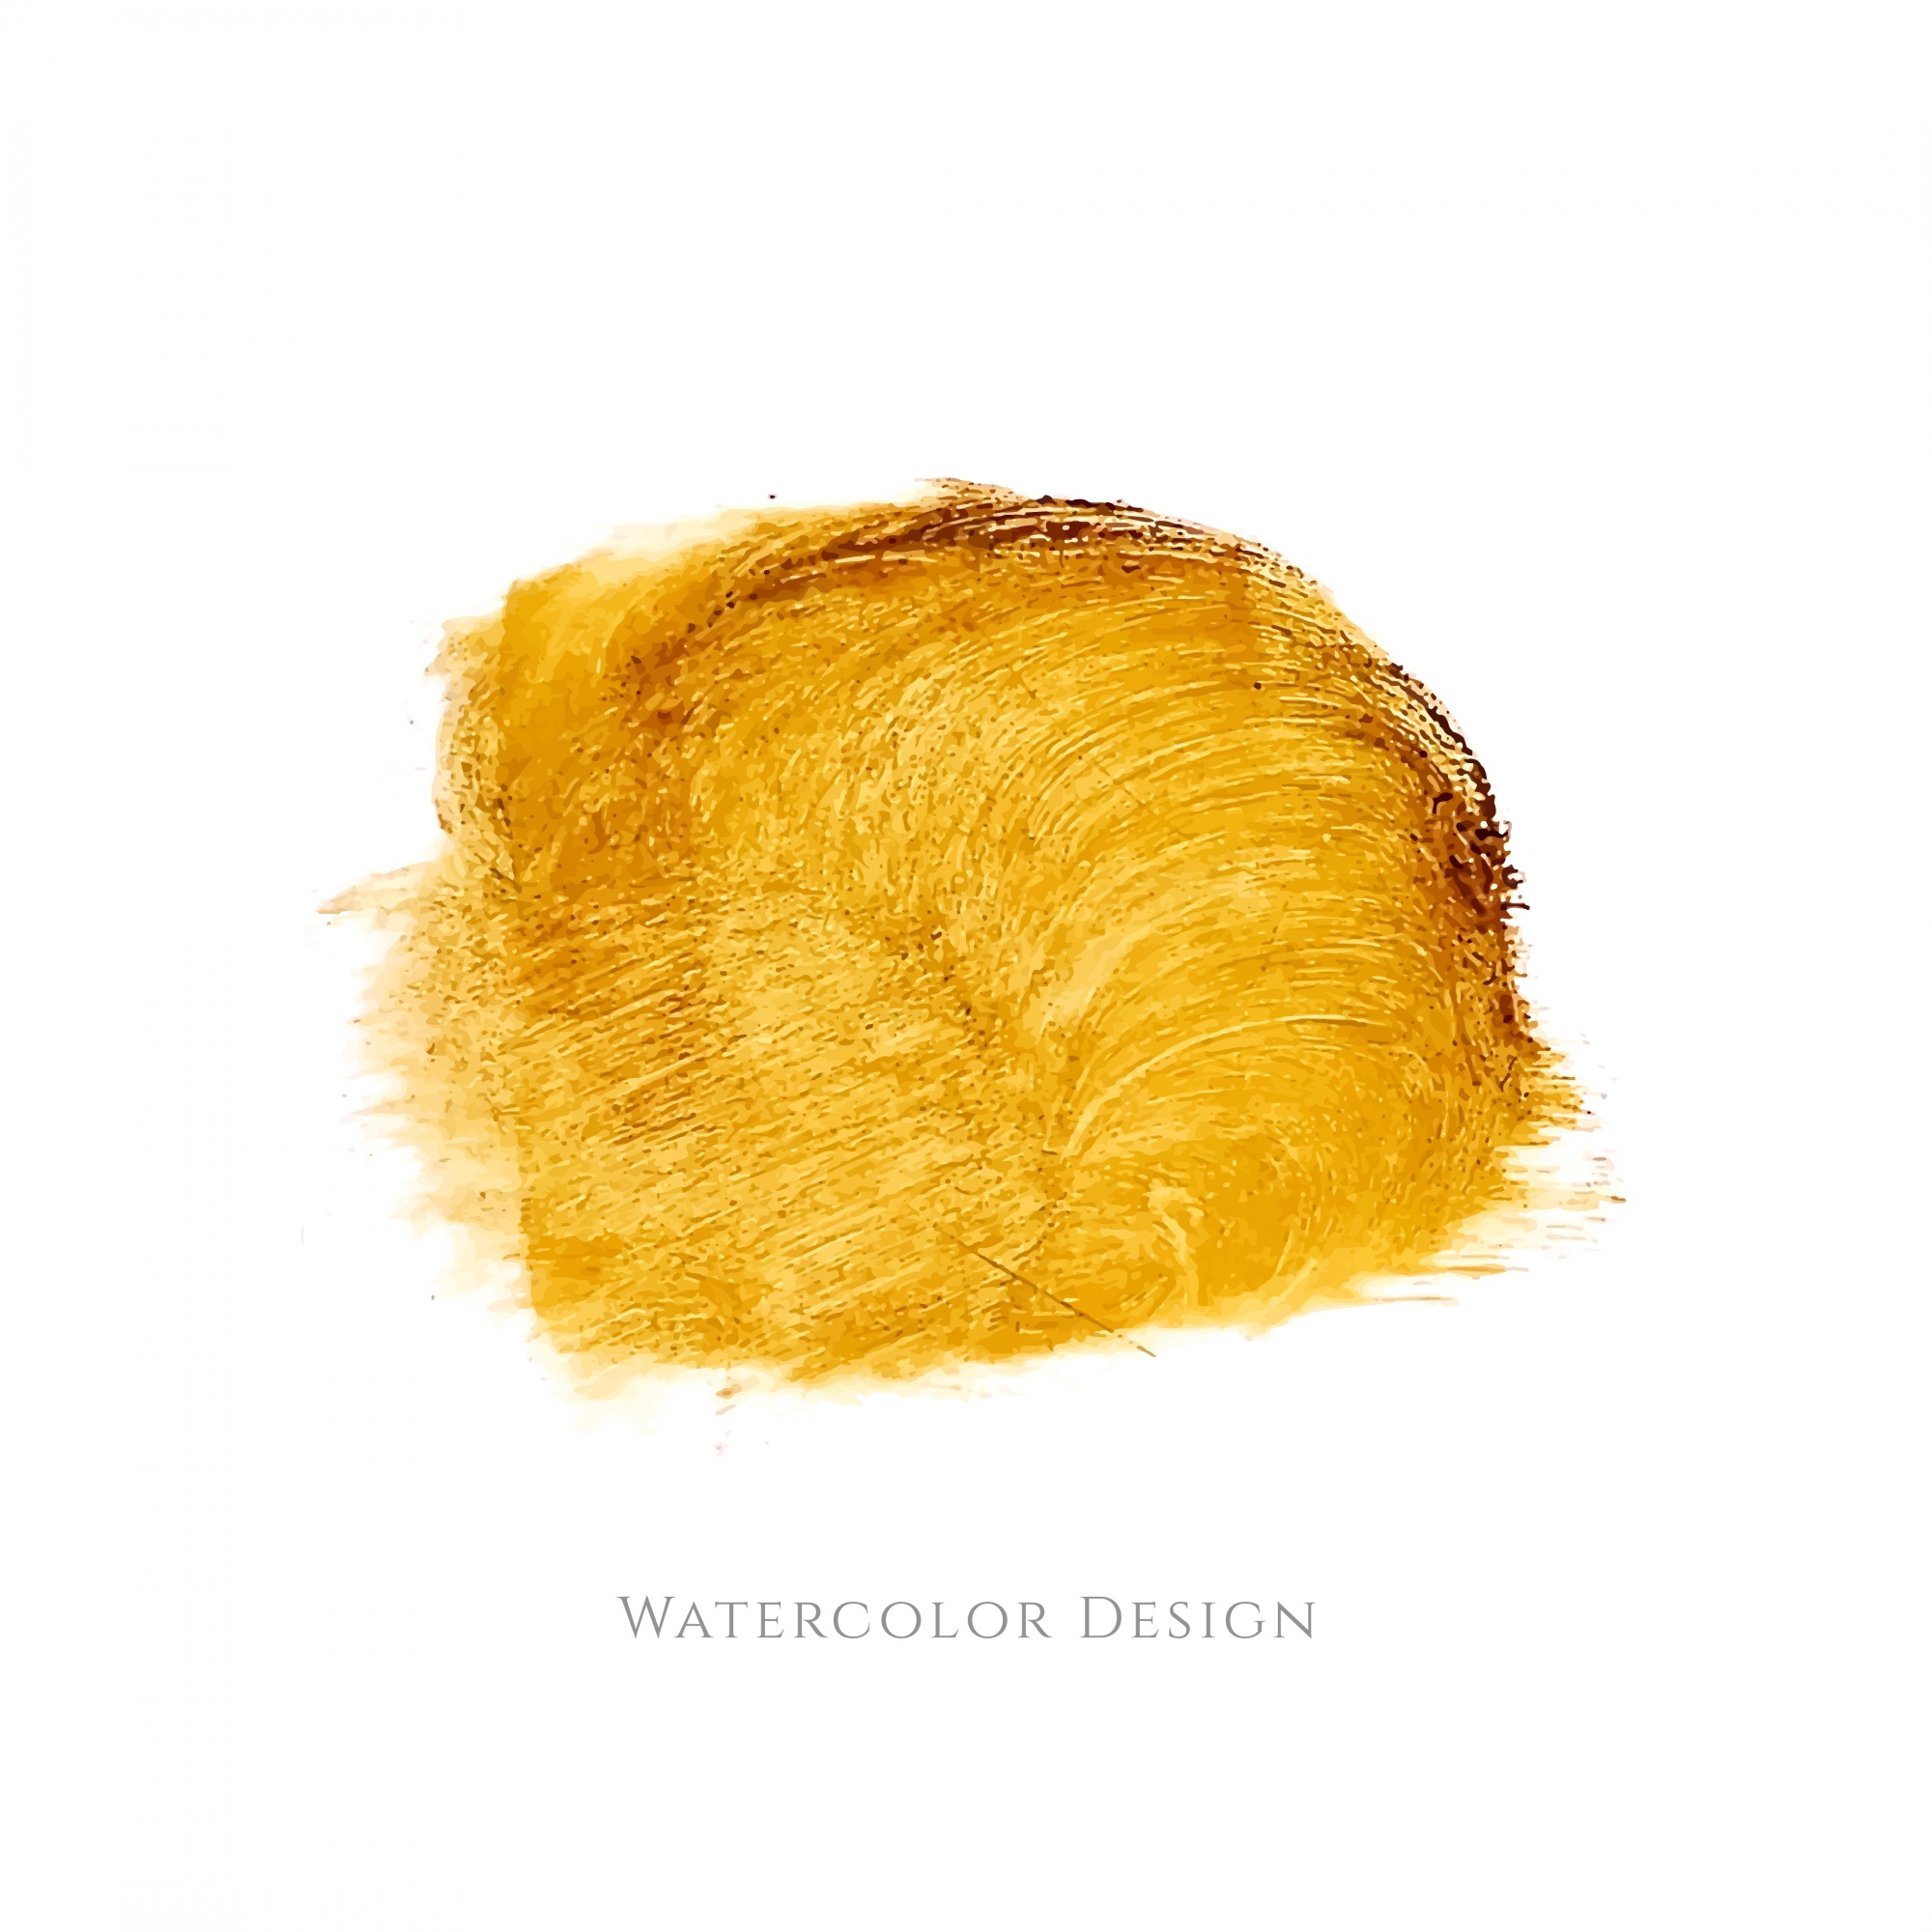 Yellow watercolor stain design